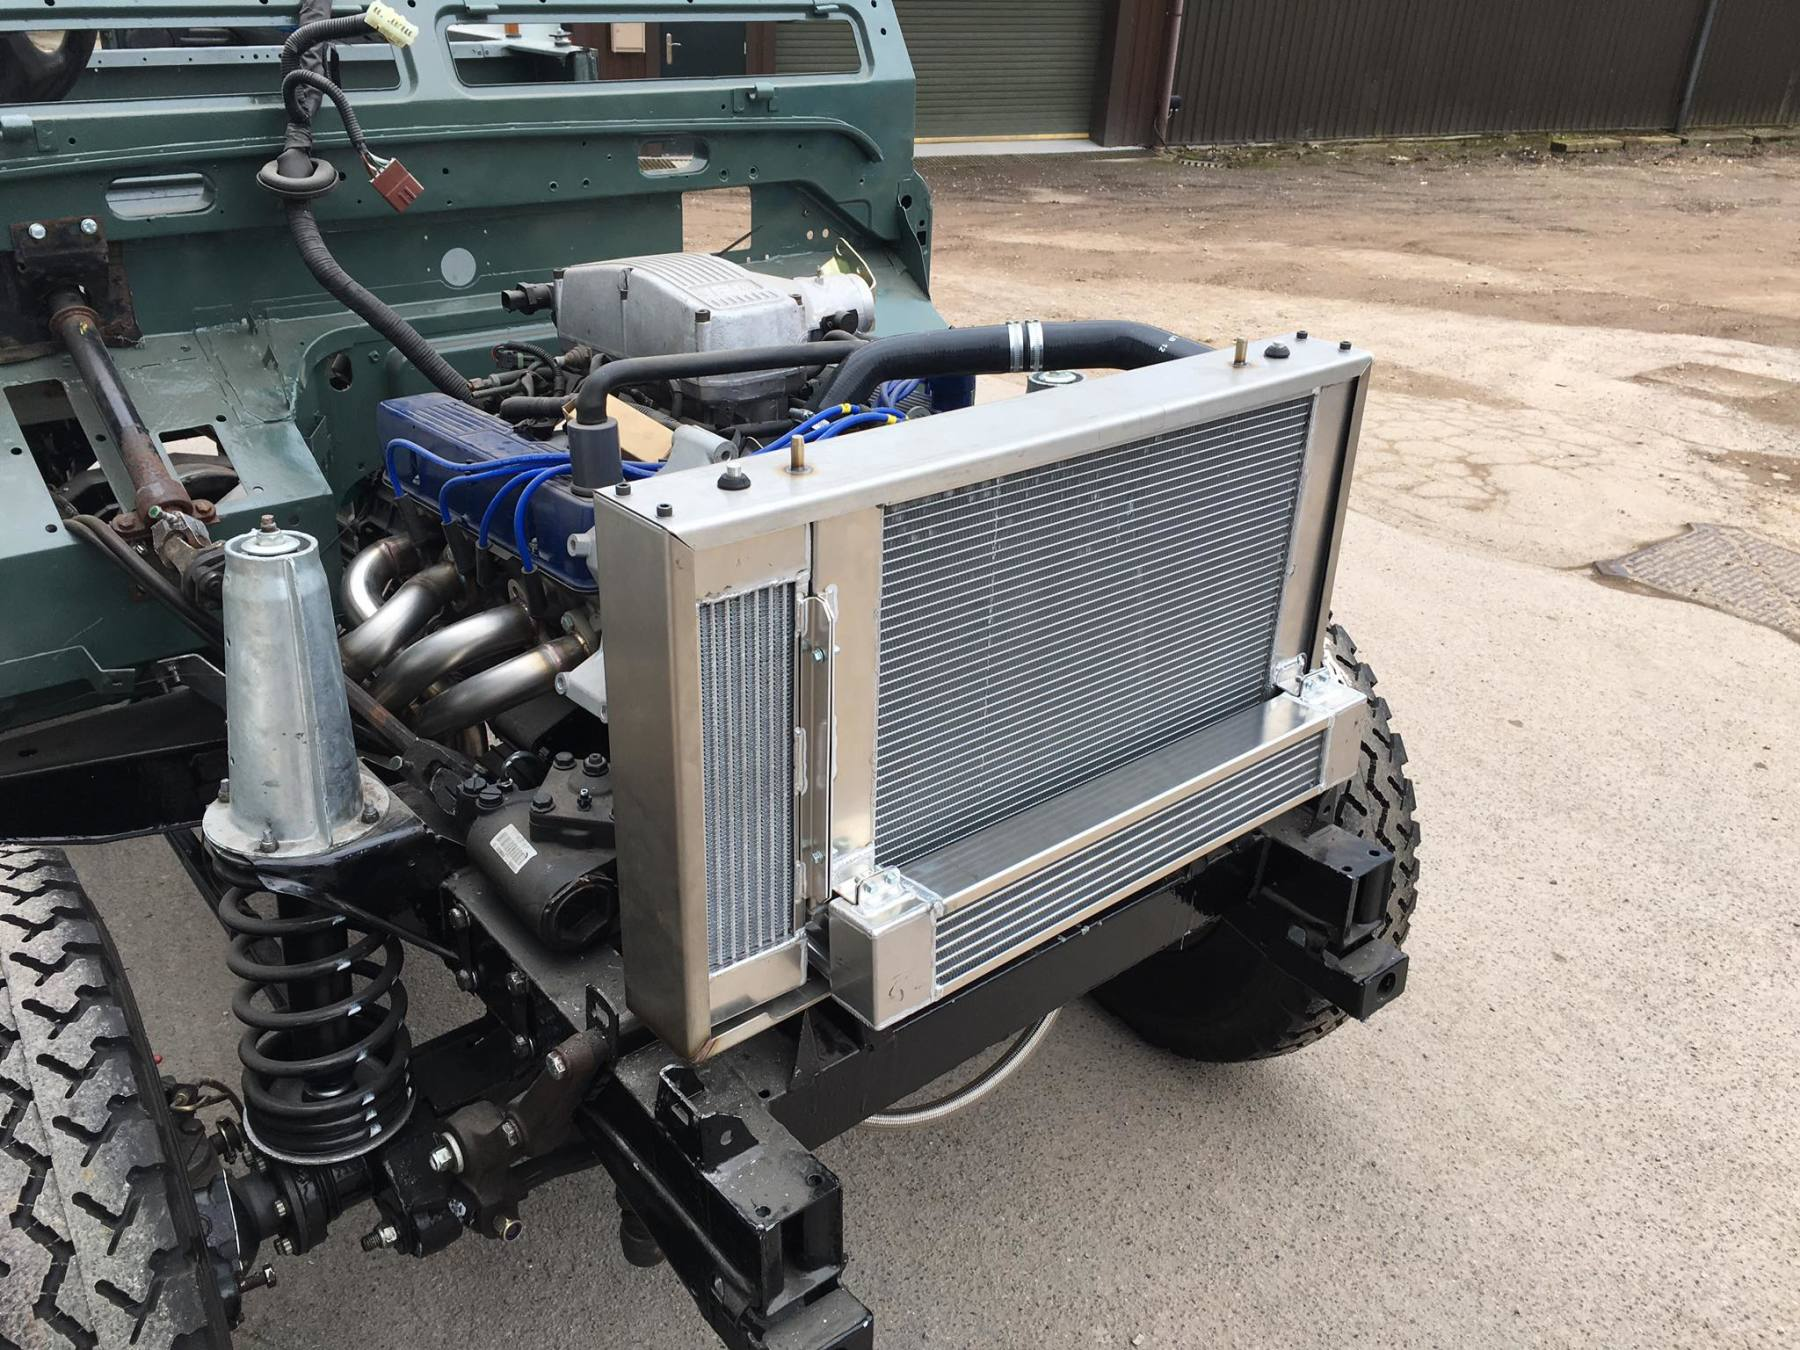 Landrover water radiator and oil cooler pack